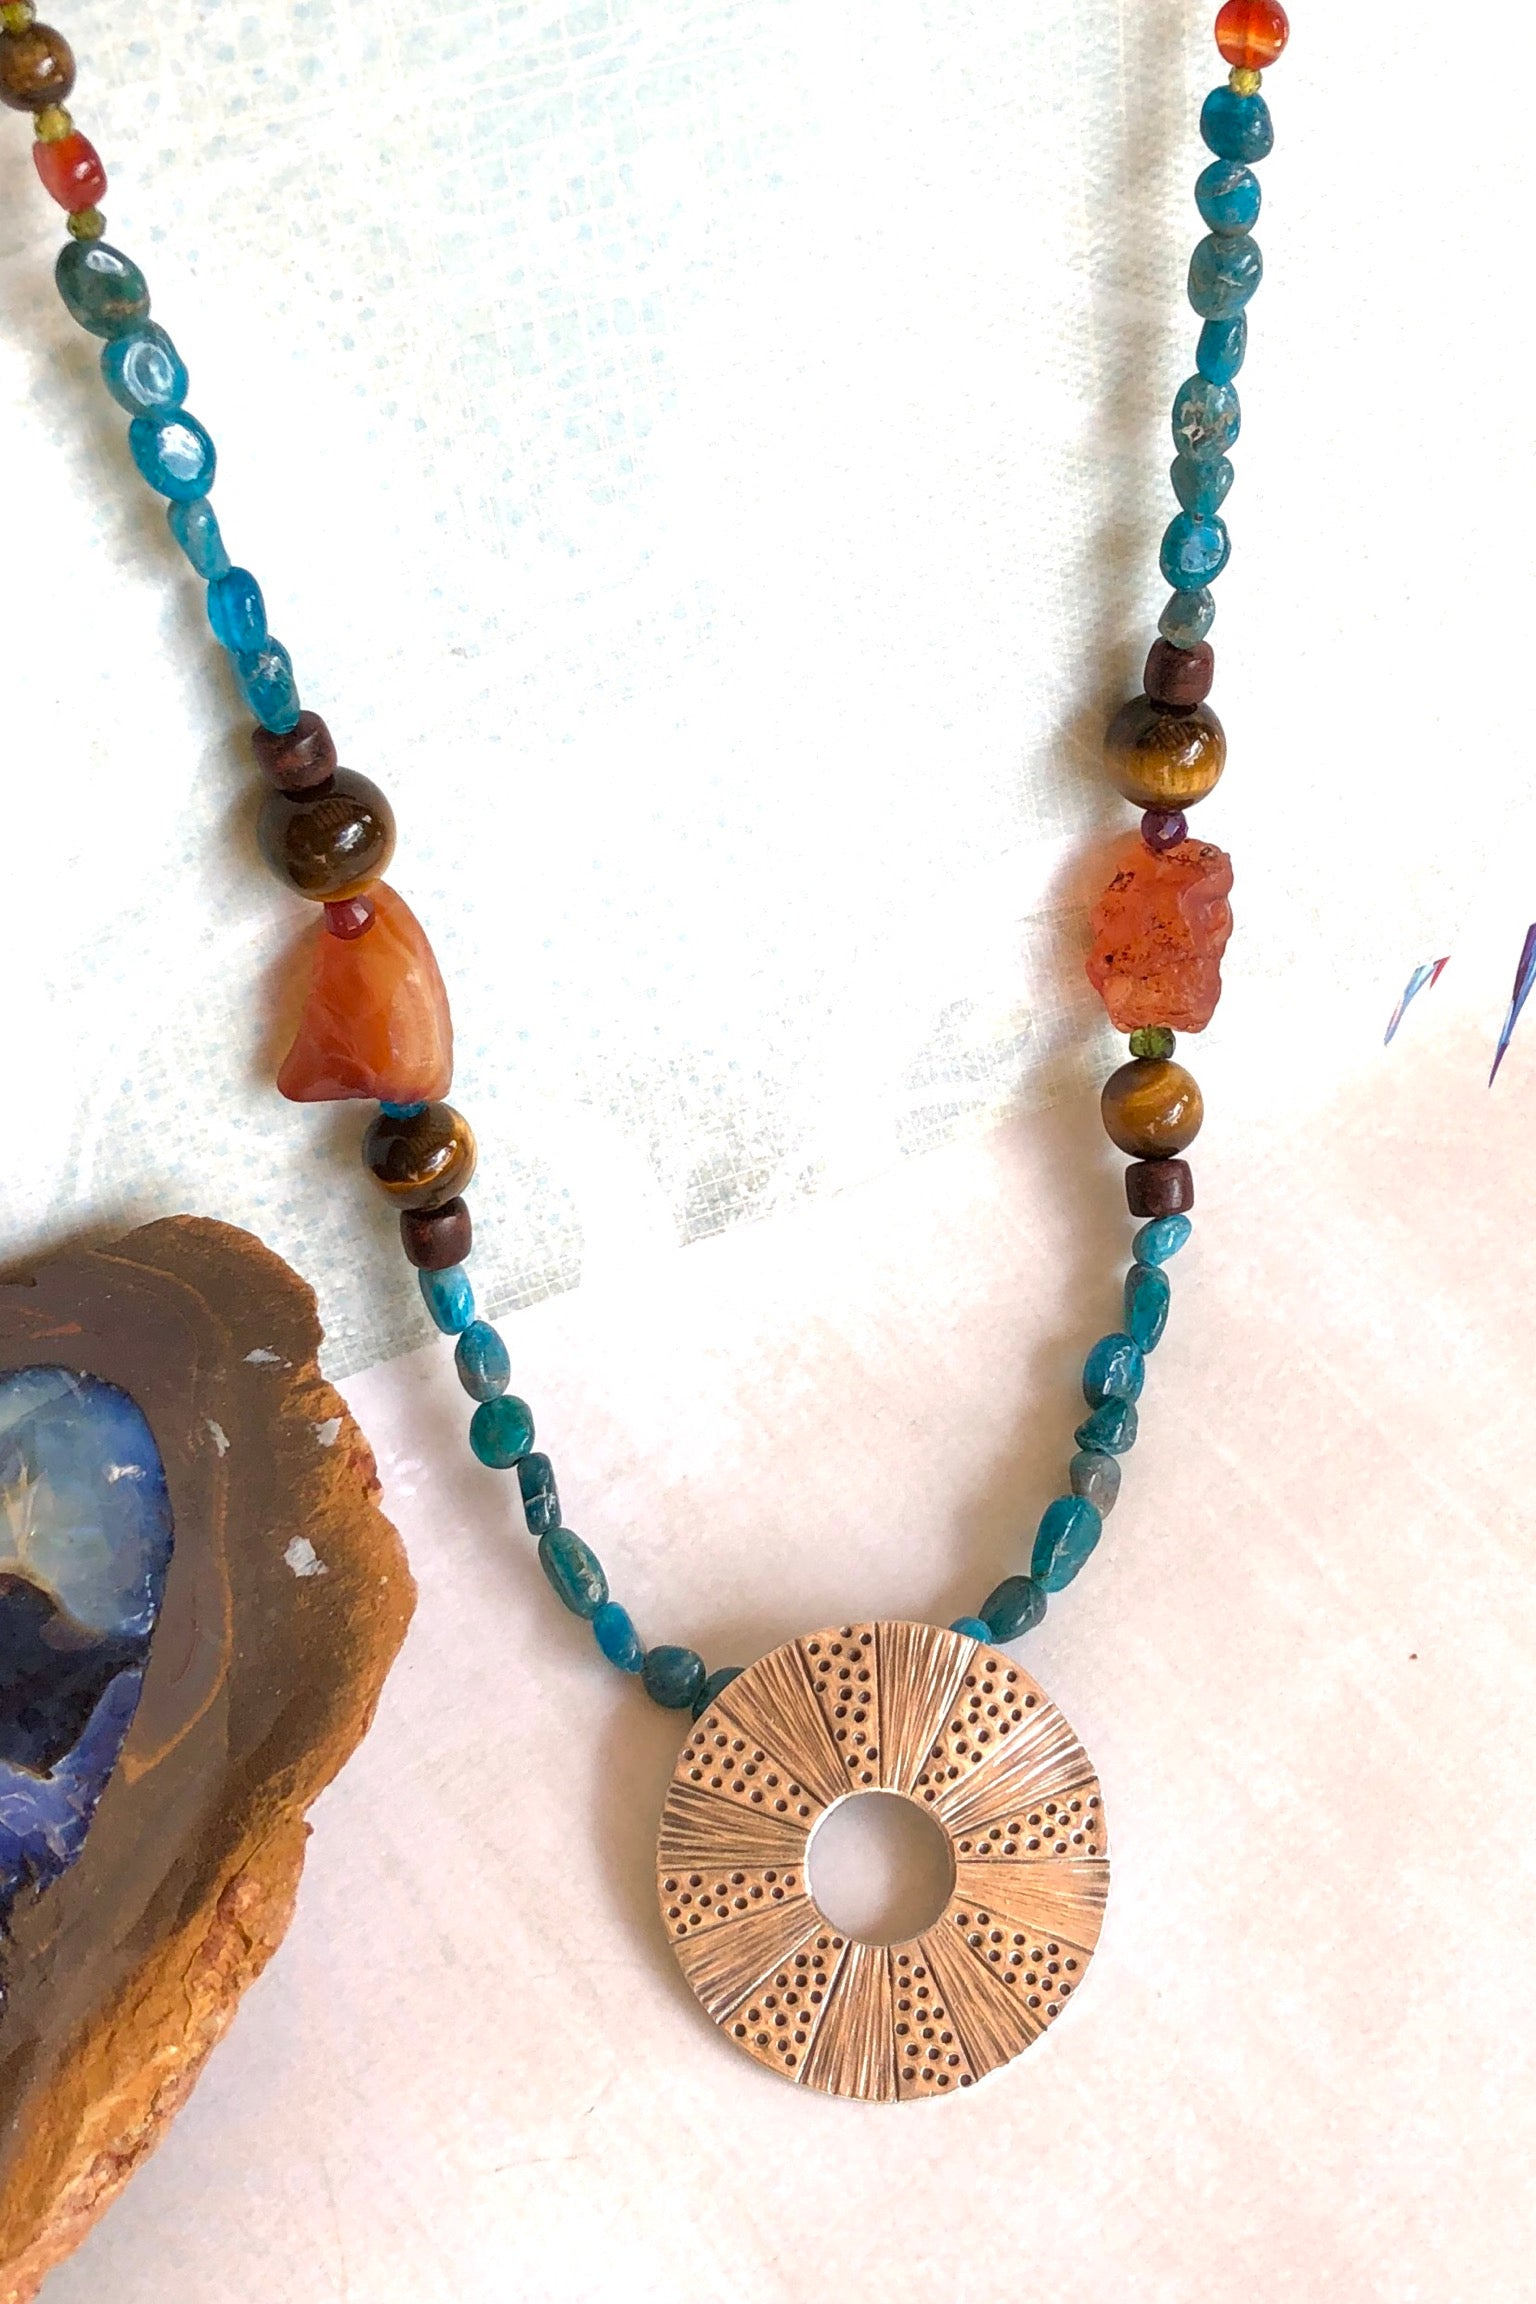 The Necklace Cay Sun Circle and Fluorite is a handmade necklace featuring 54cm in length, natural blue apatite beads, rough chunk of Carnelian and Tigers Eye and wood.